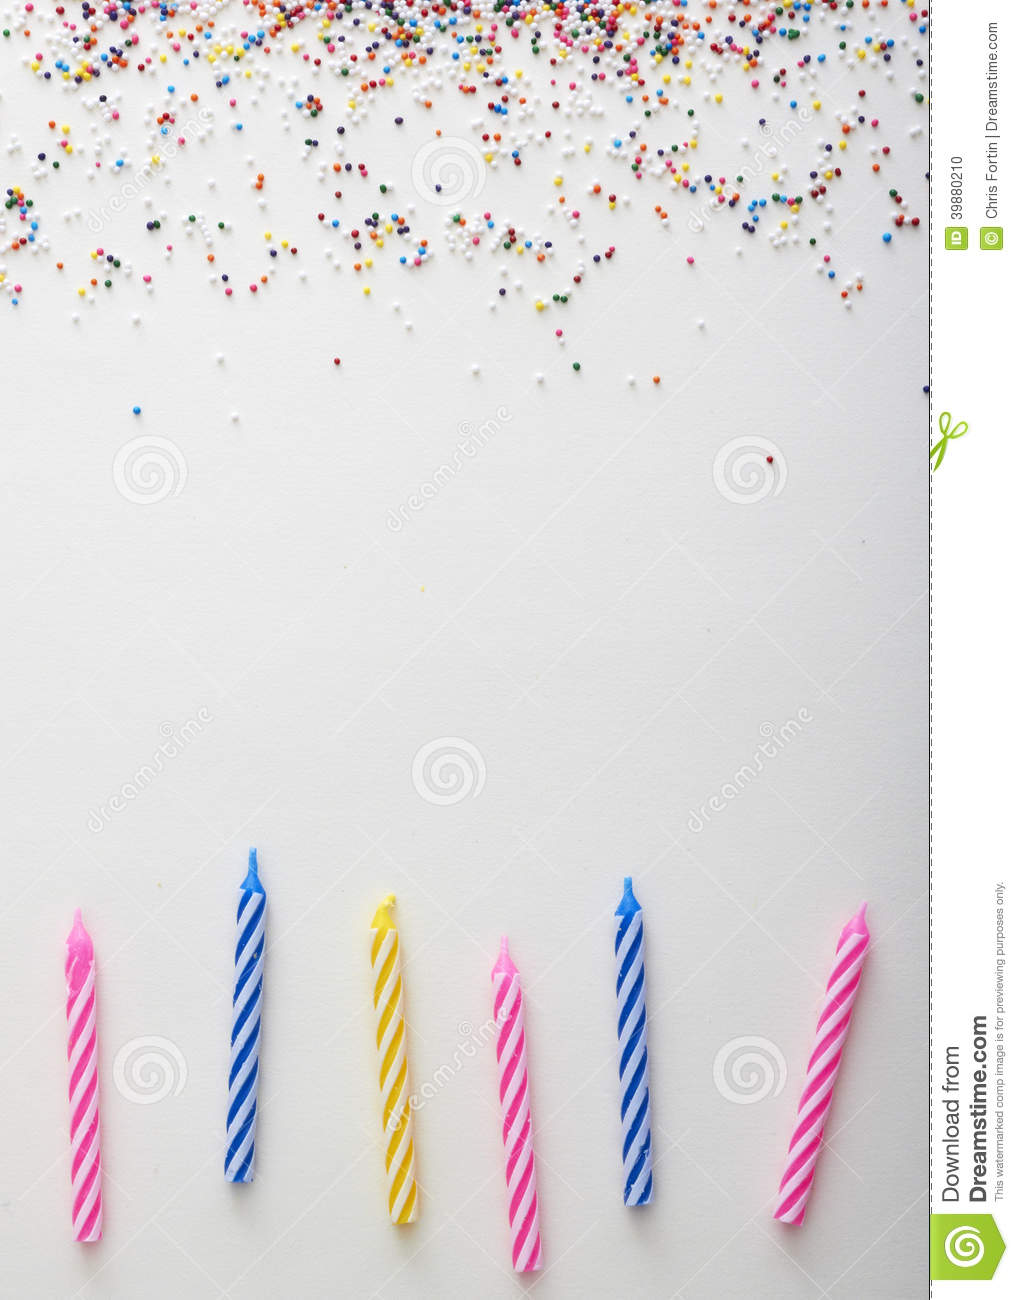 Sprinkles And Candles Background Stock Photo Image 39880210